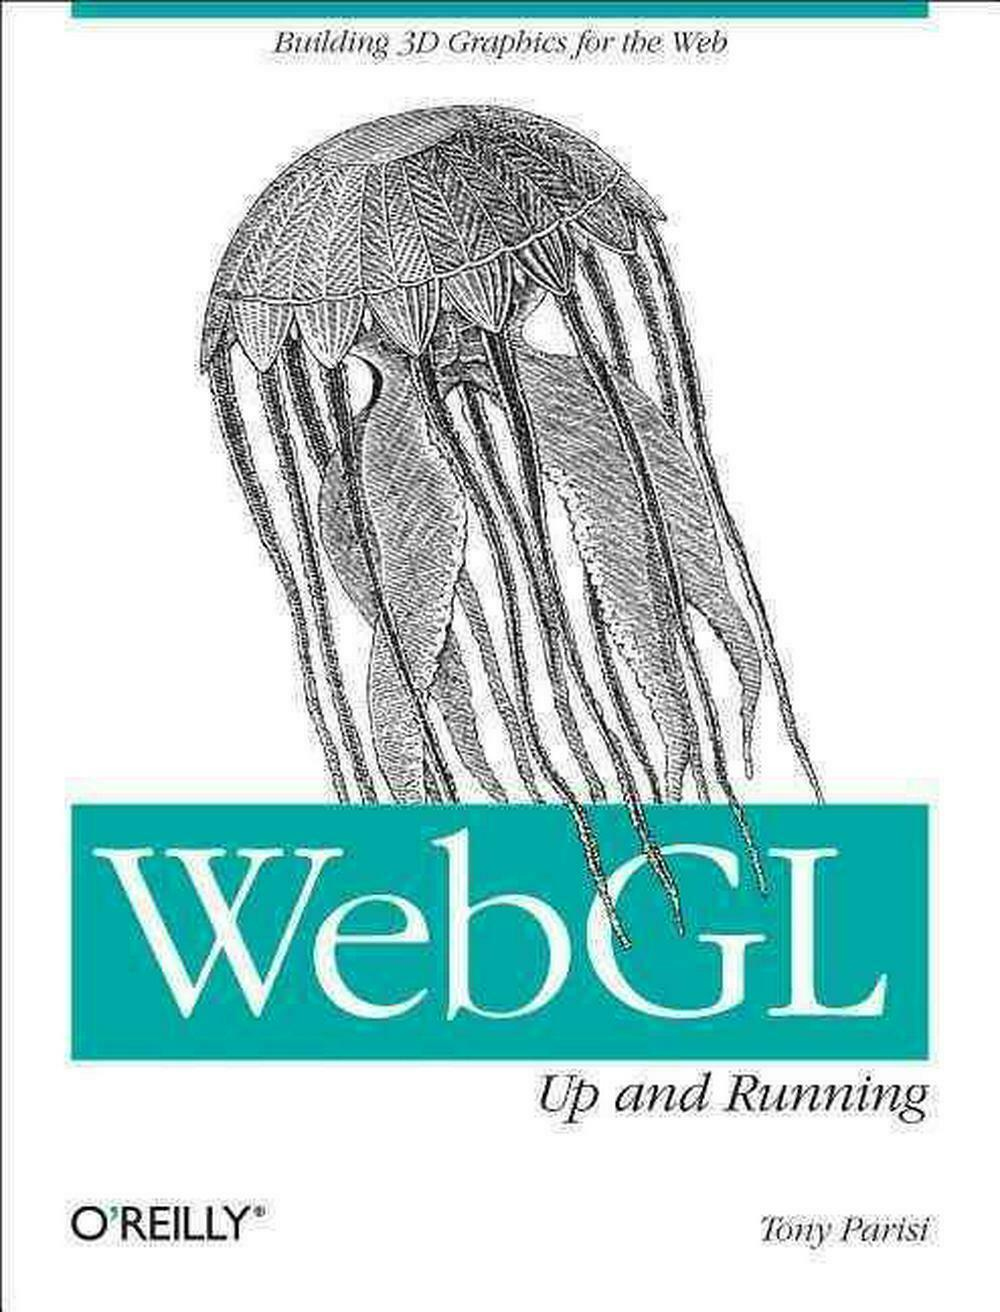 WebGL: Up and Running: Building 3D Graphics for the Web by Tony Parisi (English) |